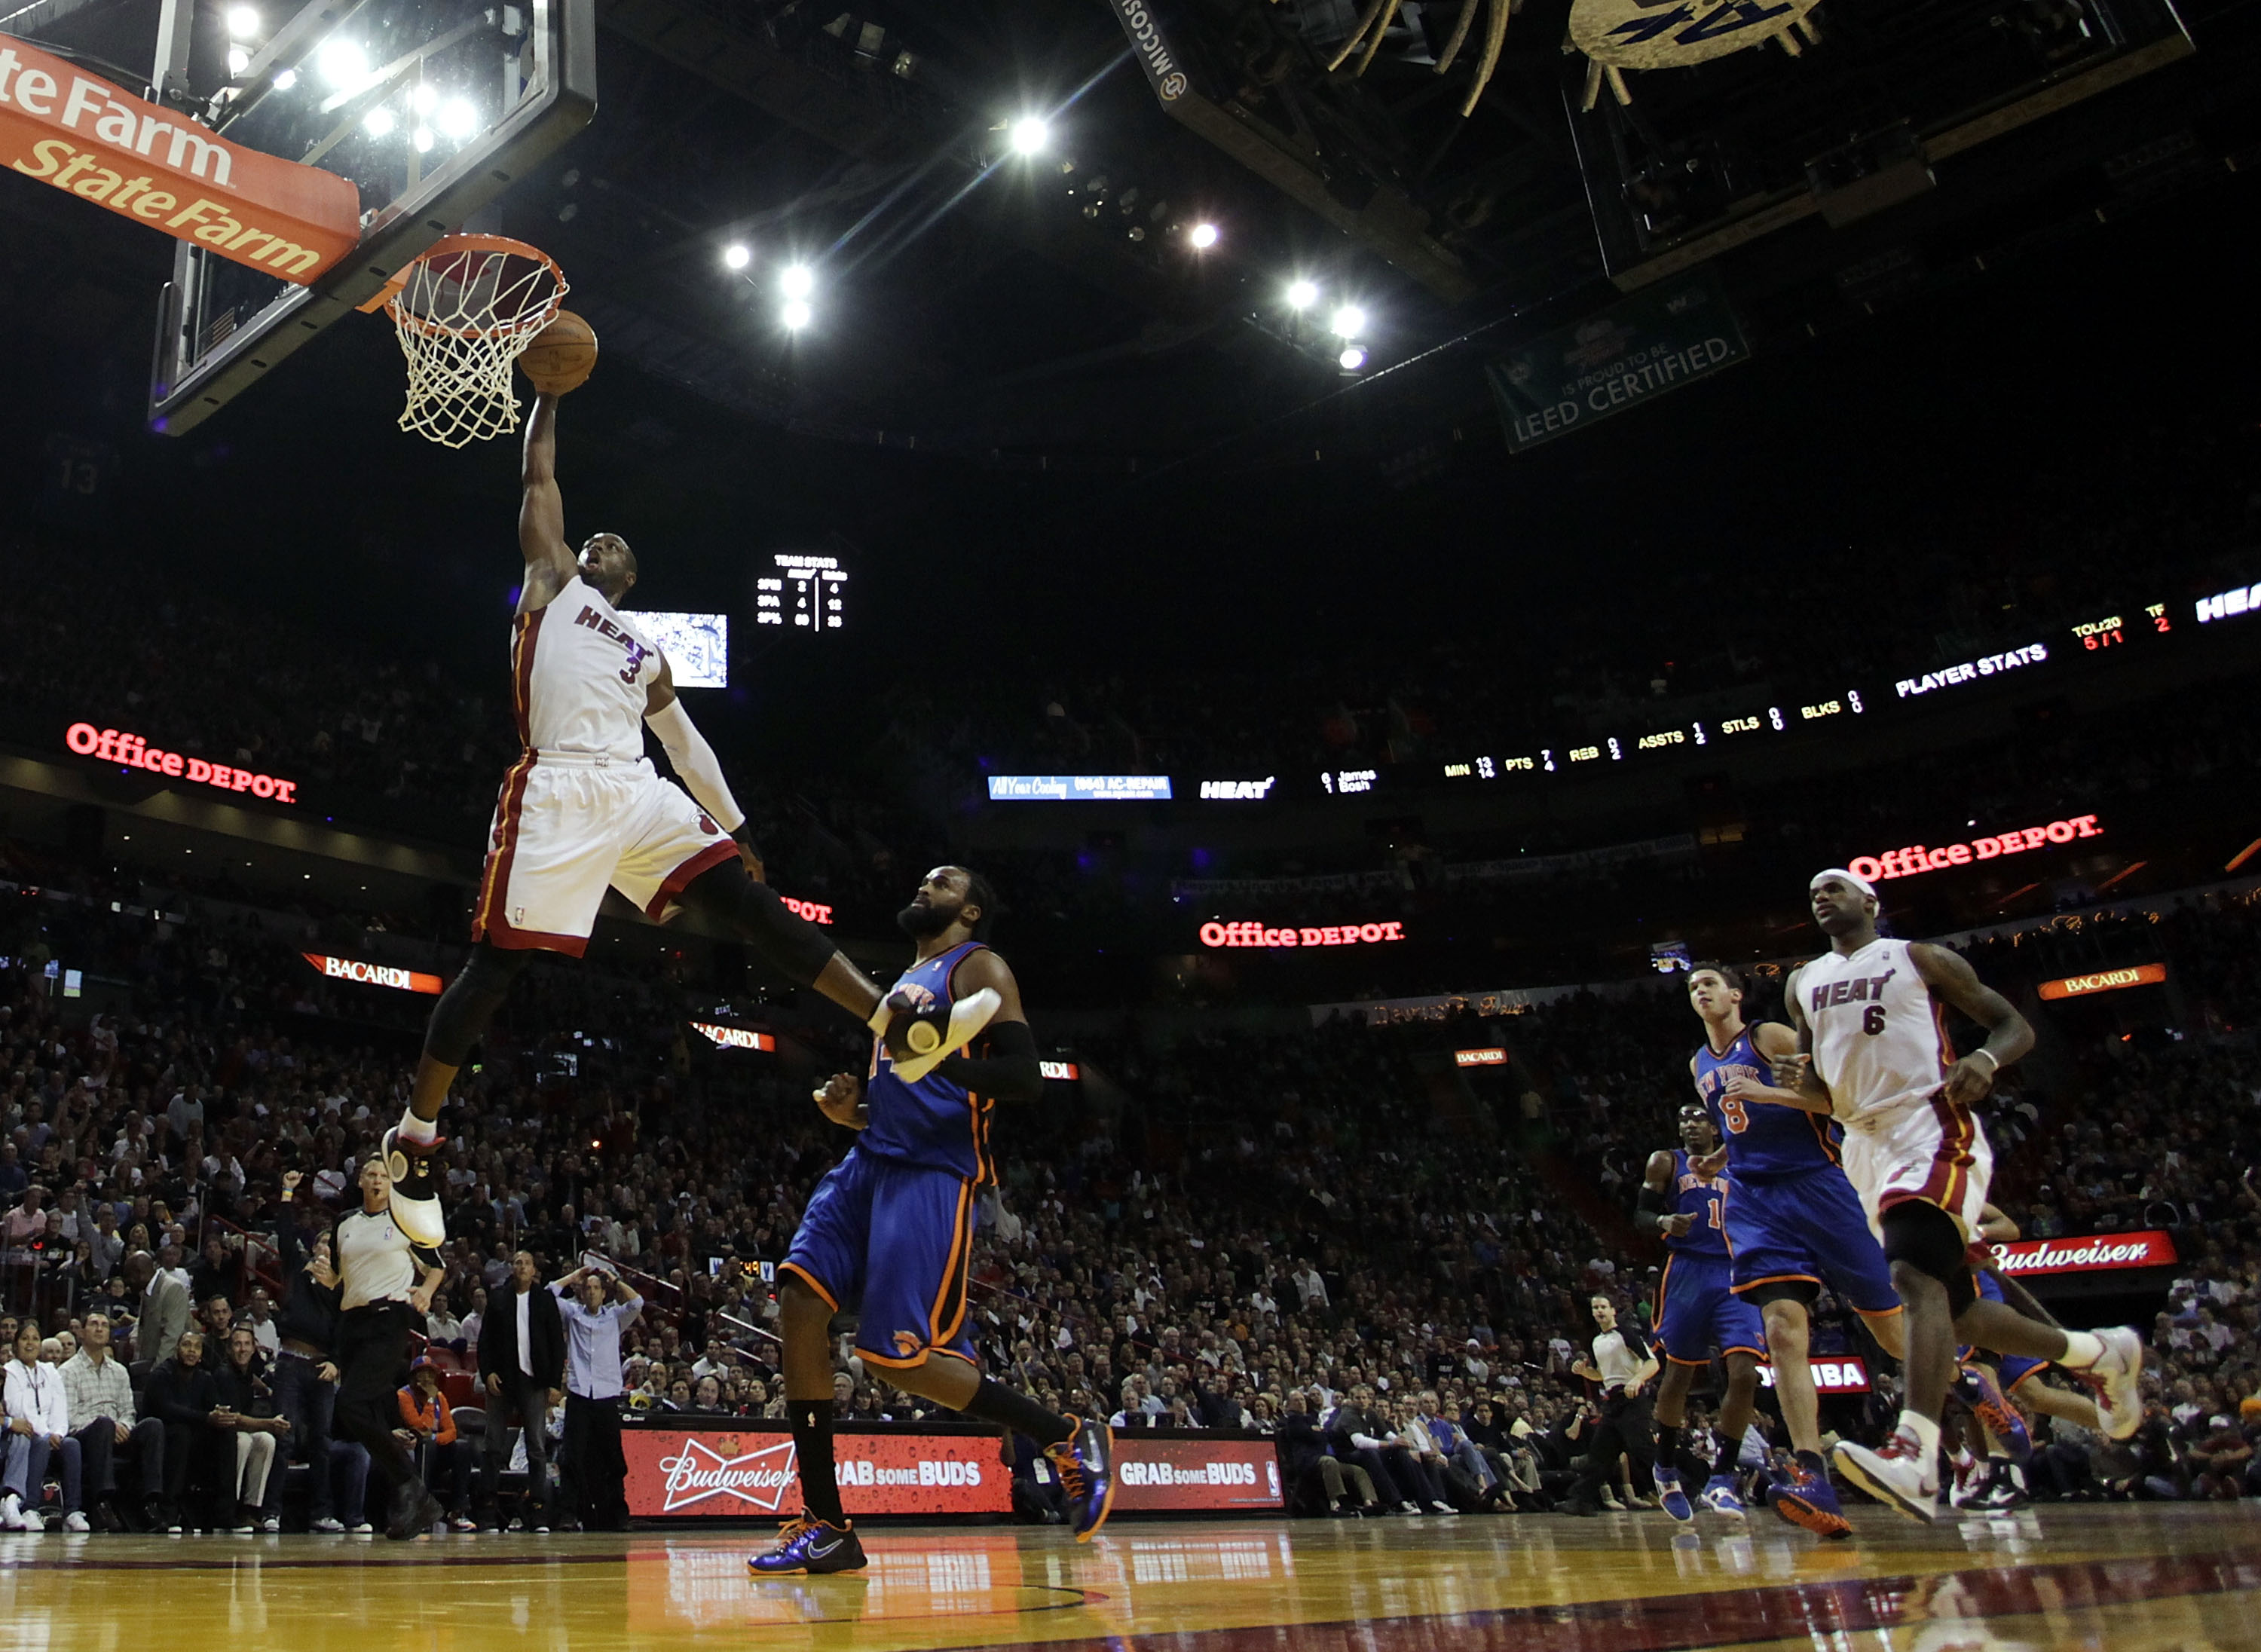 MIAMI - DECEMBER 28:  Guard Dwyane Wade #3 of the Miami Heat dunks against the New York Knicks at American Airlines Arena on December 28, 2010 in Miami, Florida.  (Photo by Marc Serota/Getty Images)